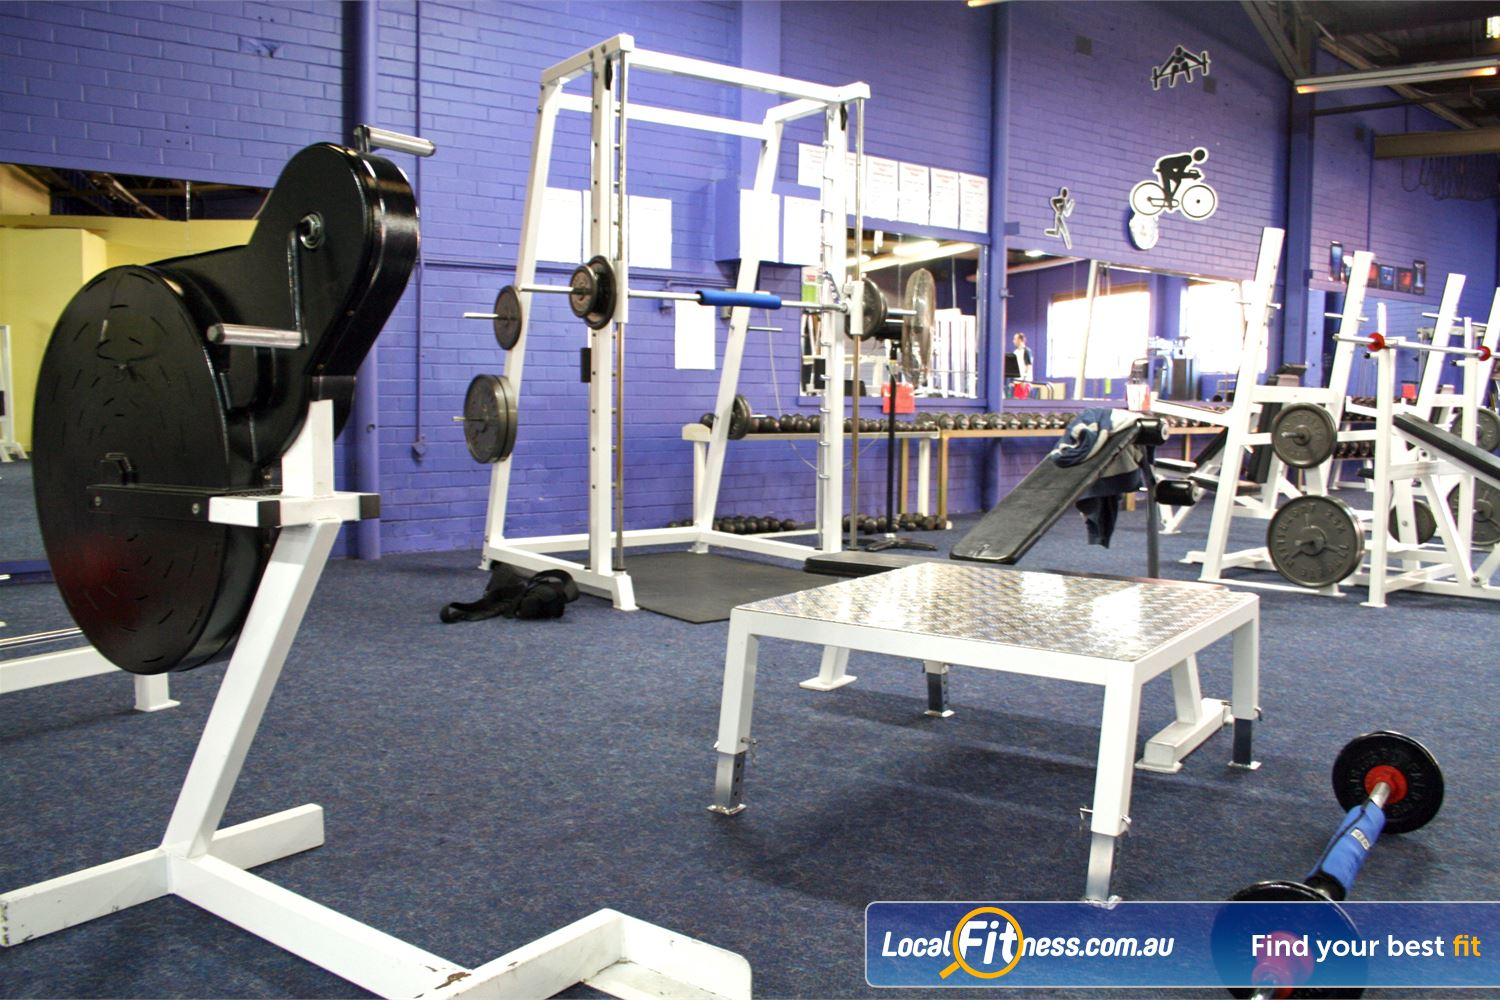 FITafex Gymnasium Near Strathmore Build those arms on our military style grinder.